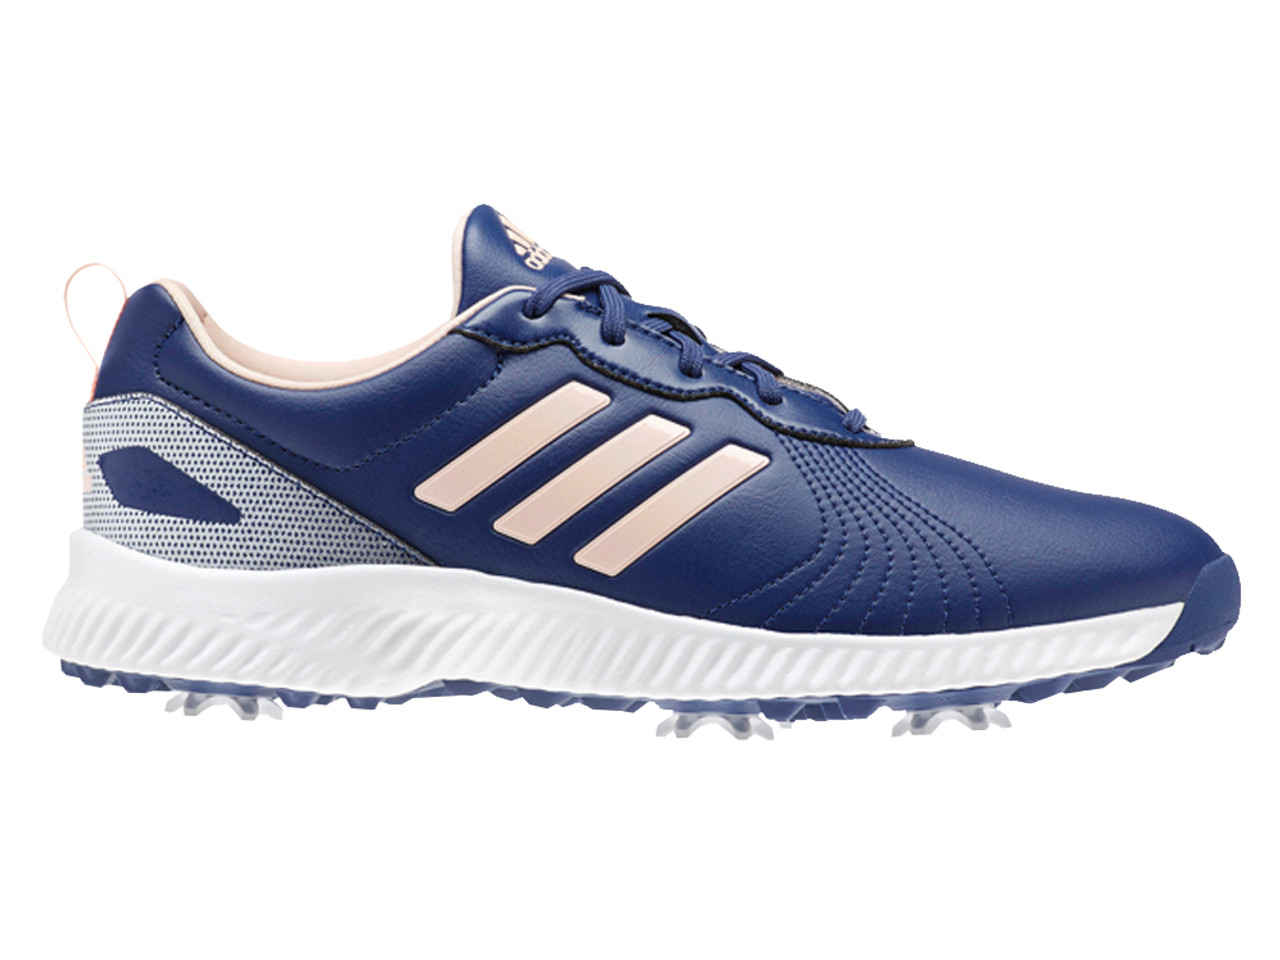 fca1e5641 Adidas Ladies Response Bounce Golf Shoes - Navy Clear Orange. Adidas